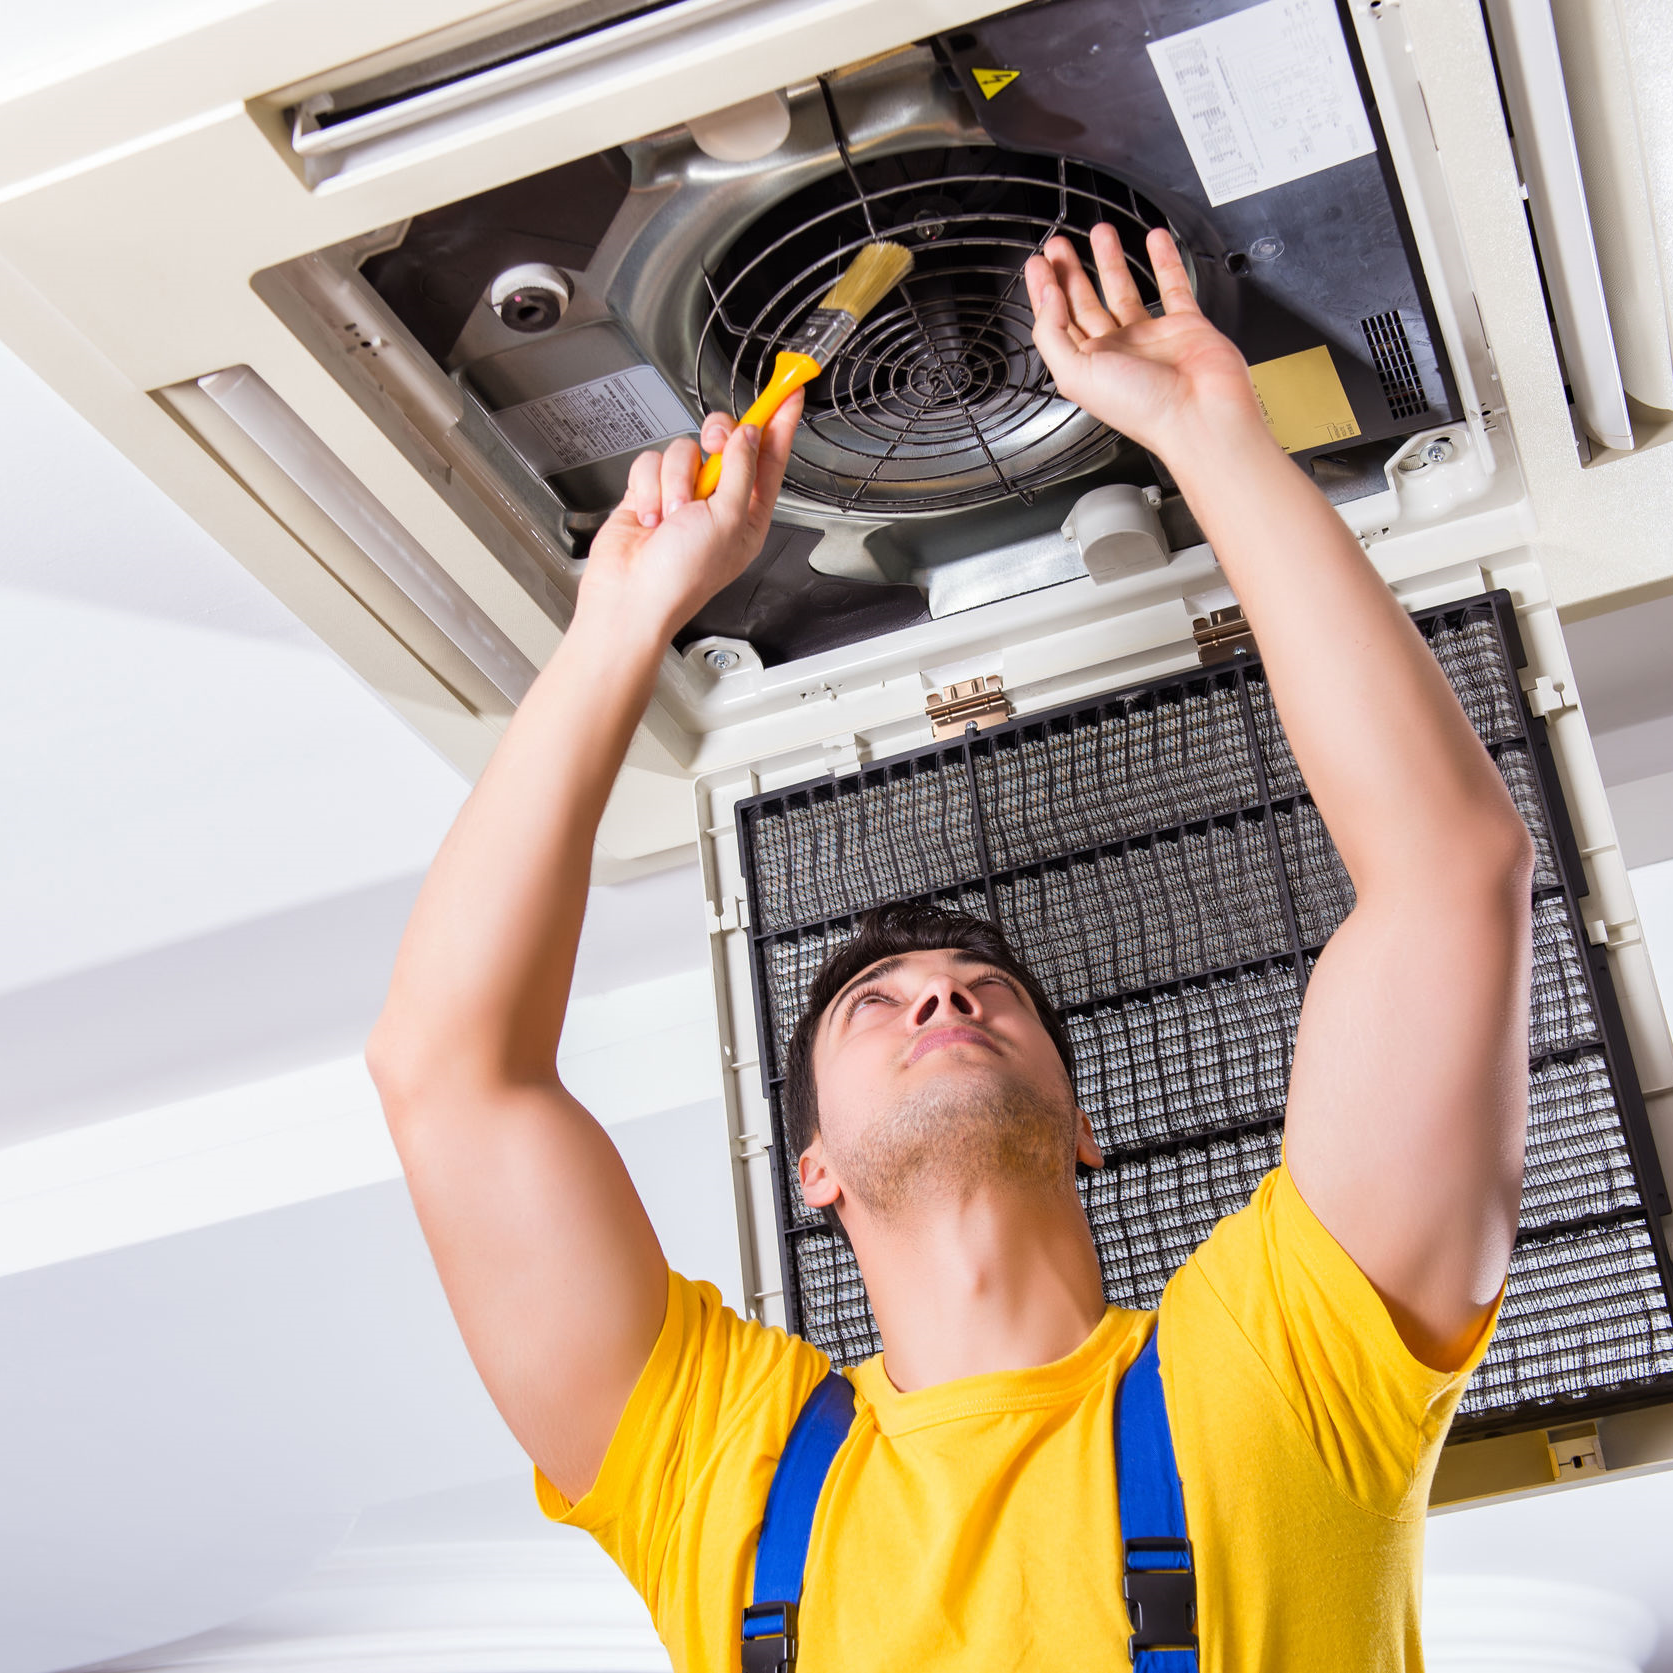 A contractor repairing an air conditioner in a ceiling